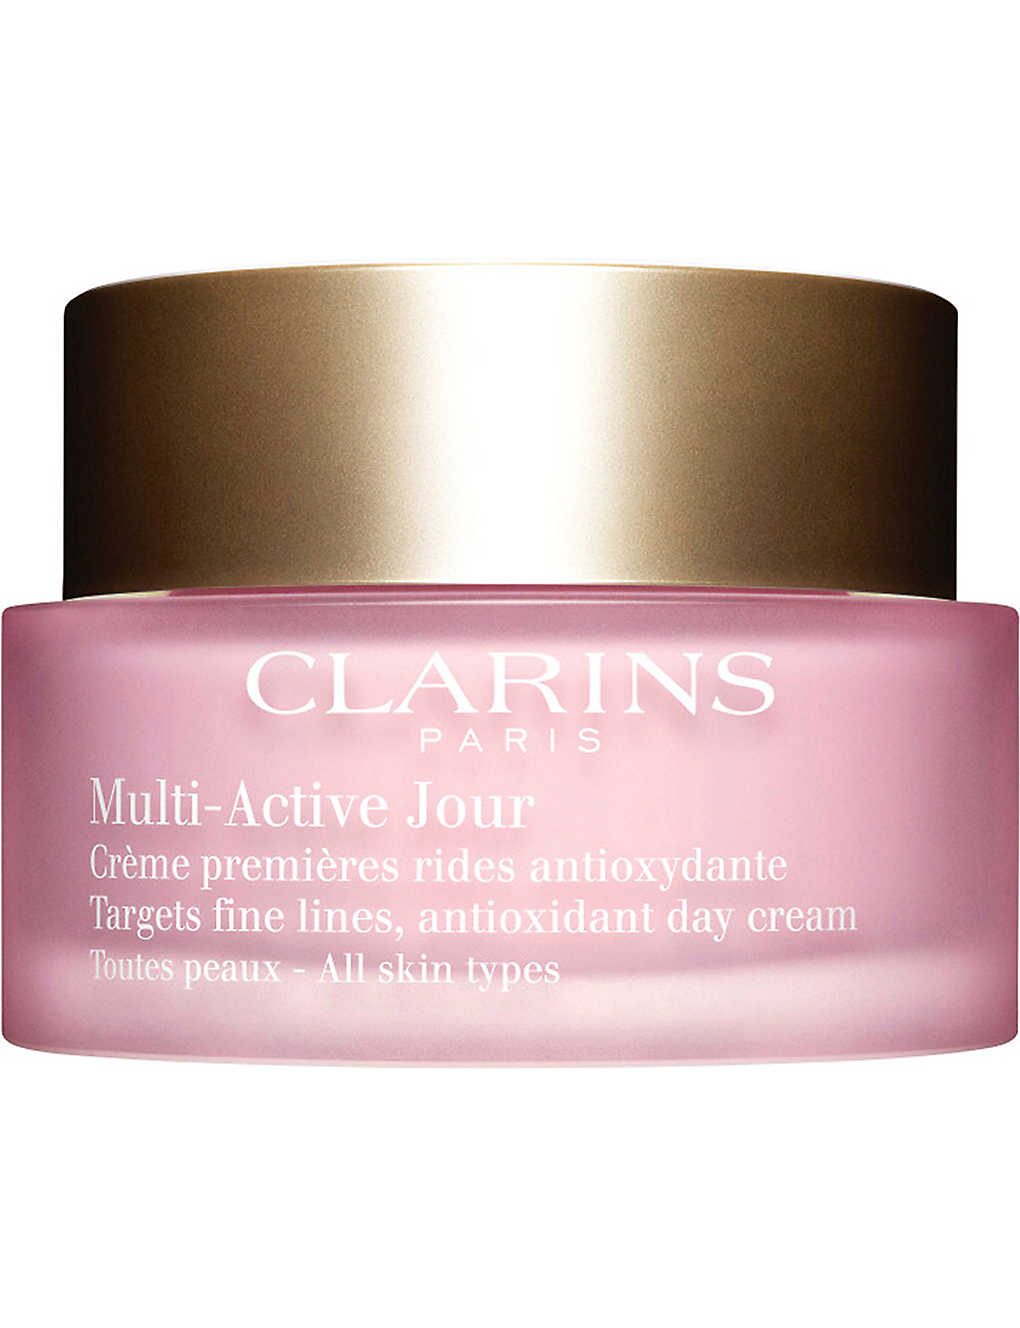 CLARINS: Multi-Active Anti-Oxidant Day Cream 50ml